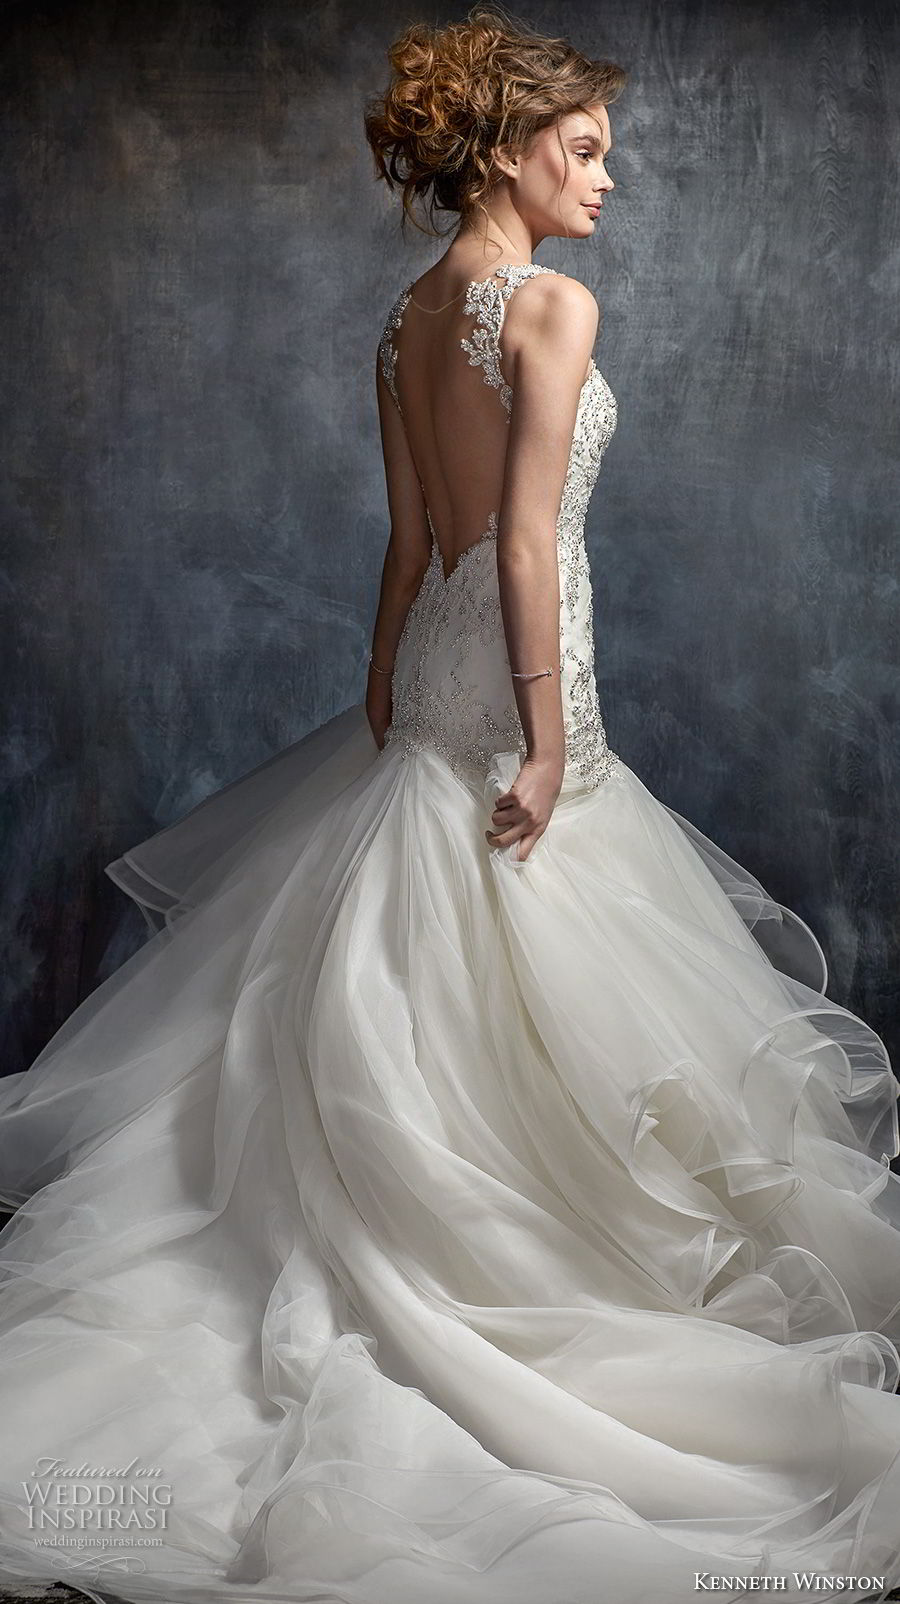 kenneth winston fall 2017 bridal sleeveless thin strap sweetheart neckline heavily embellished beaded bodice elegant mermaid wedding dress open sheer back chapel train (56) bv